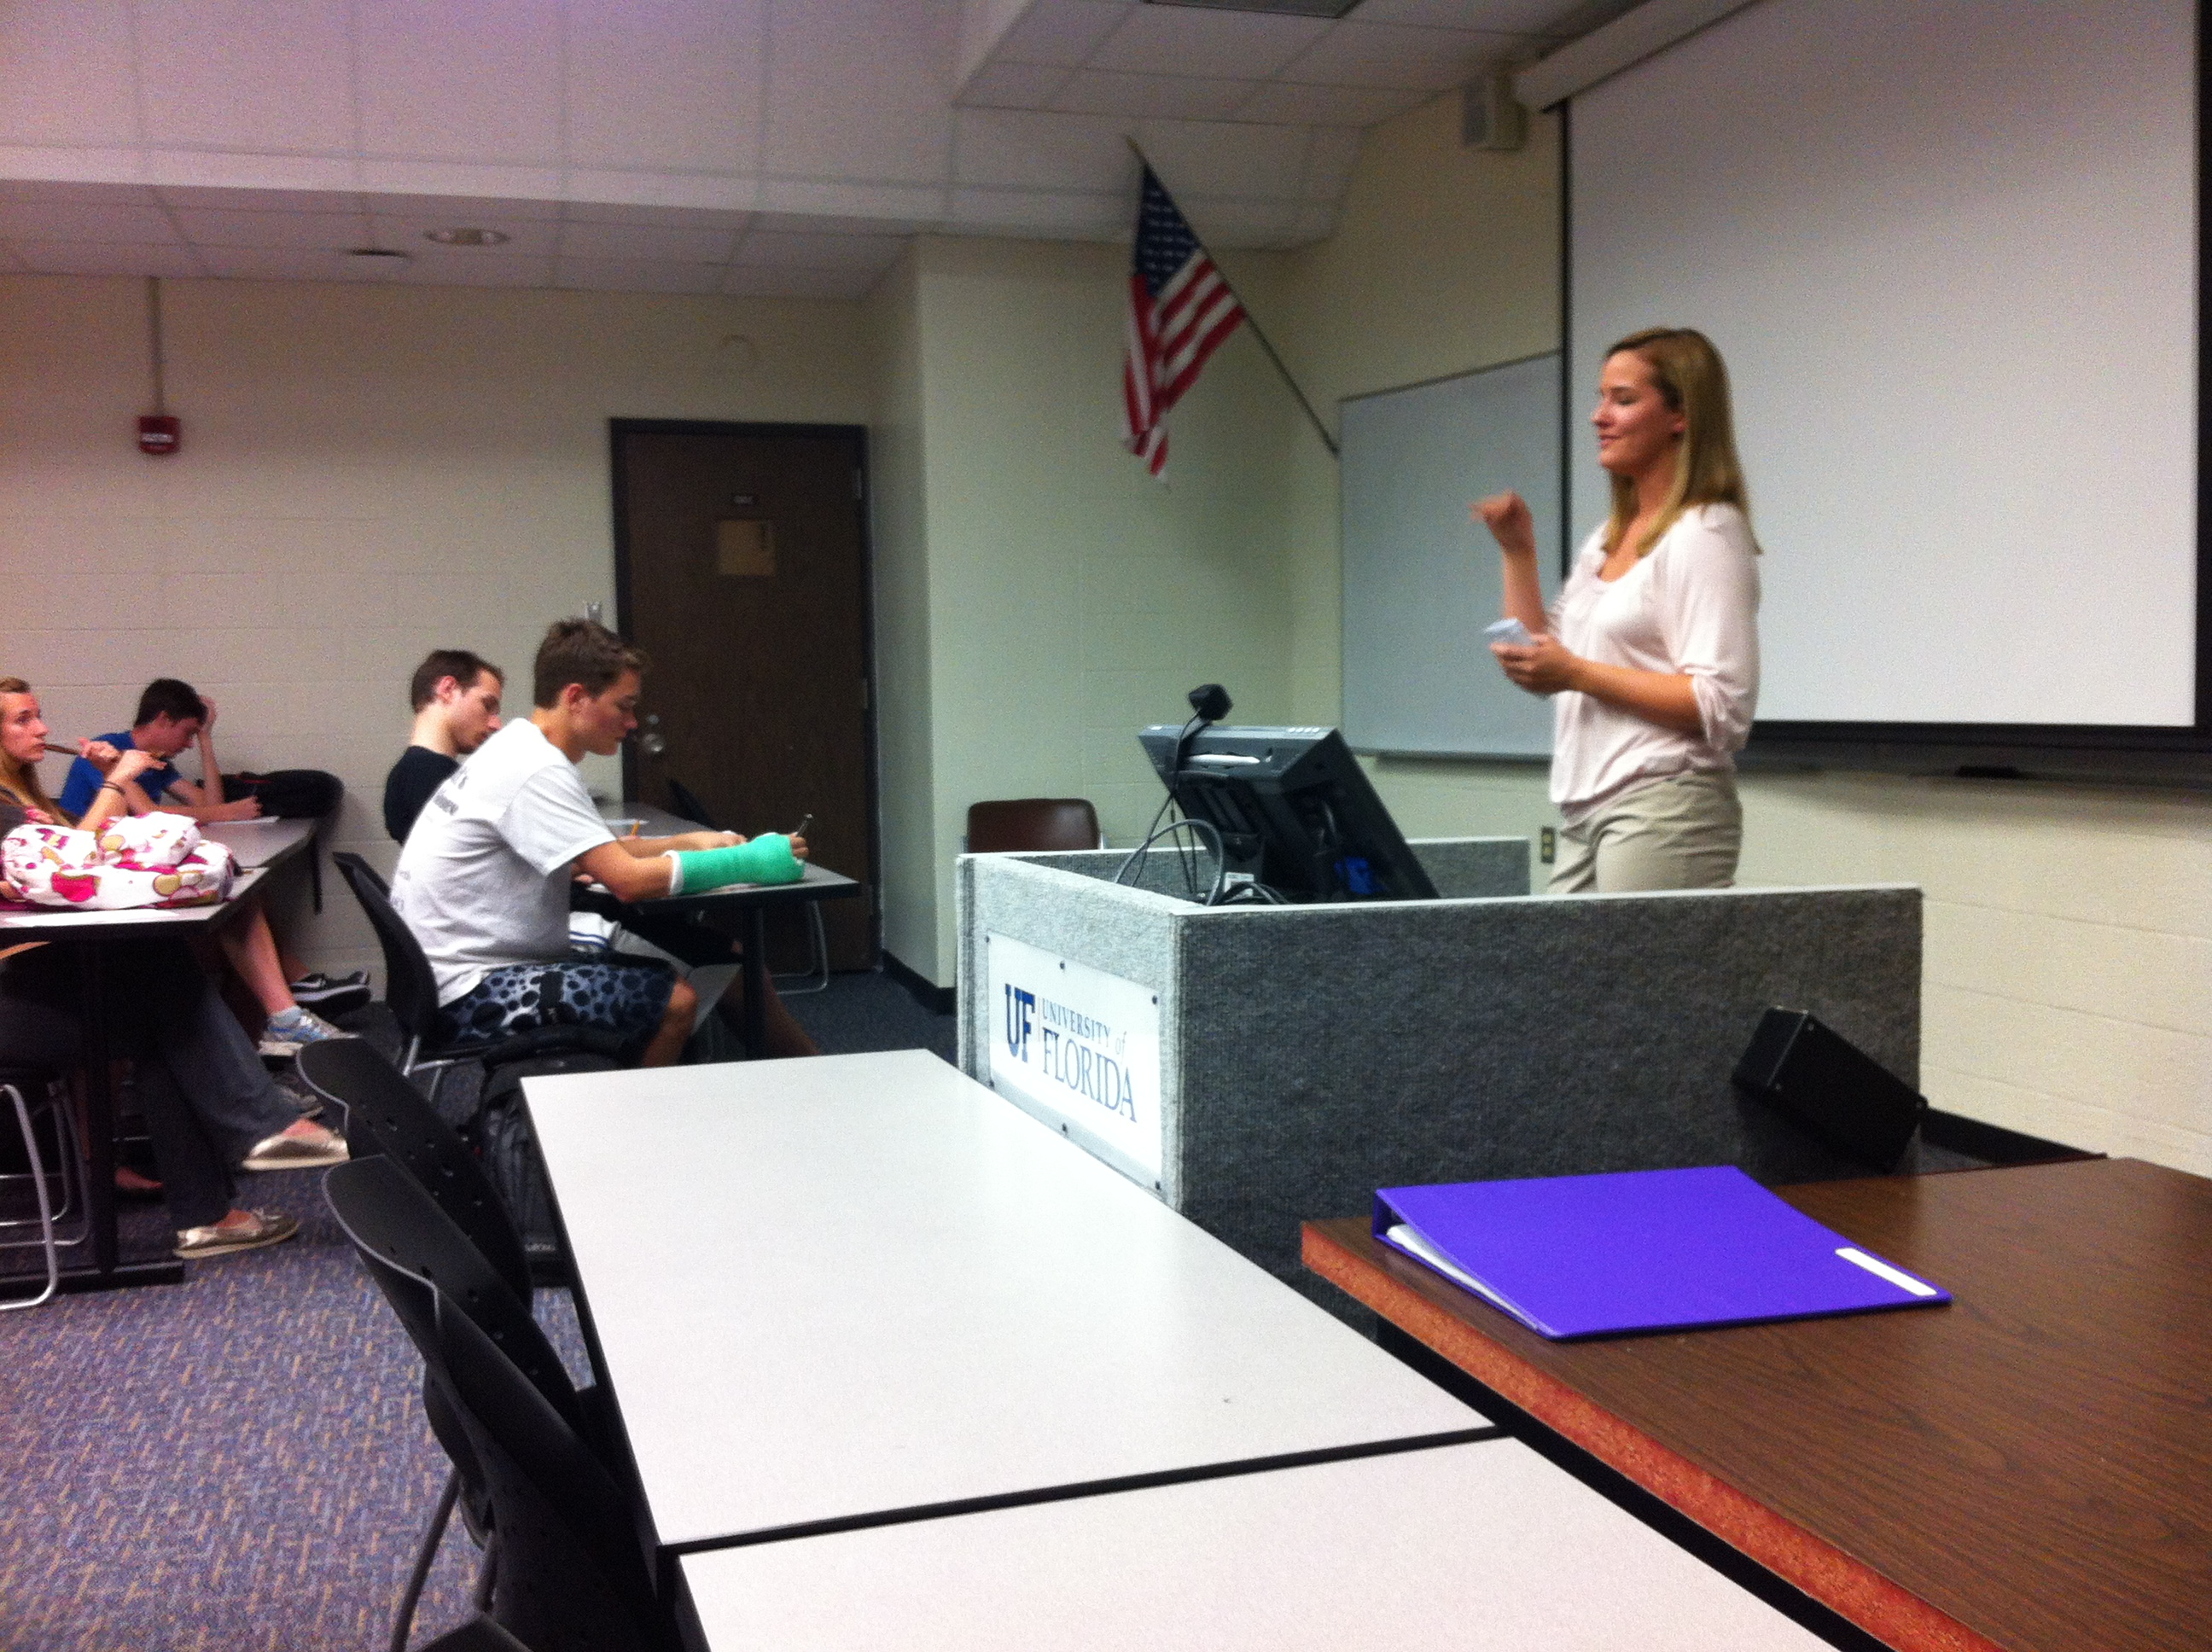 Jessica Hinkle delivers a lecture to students